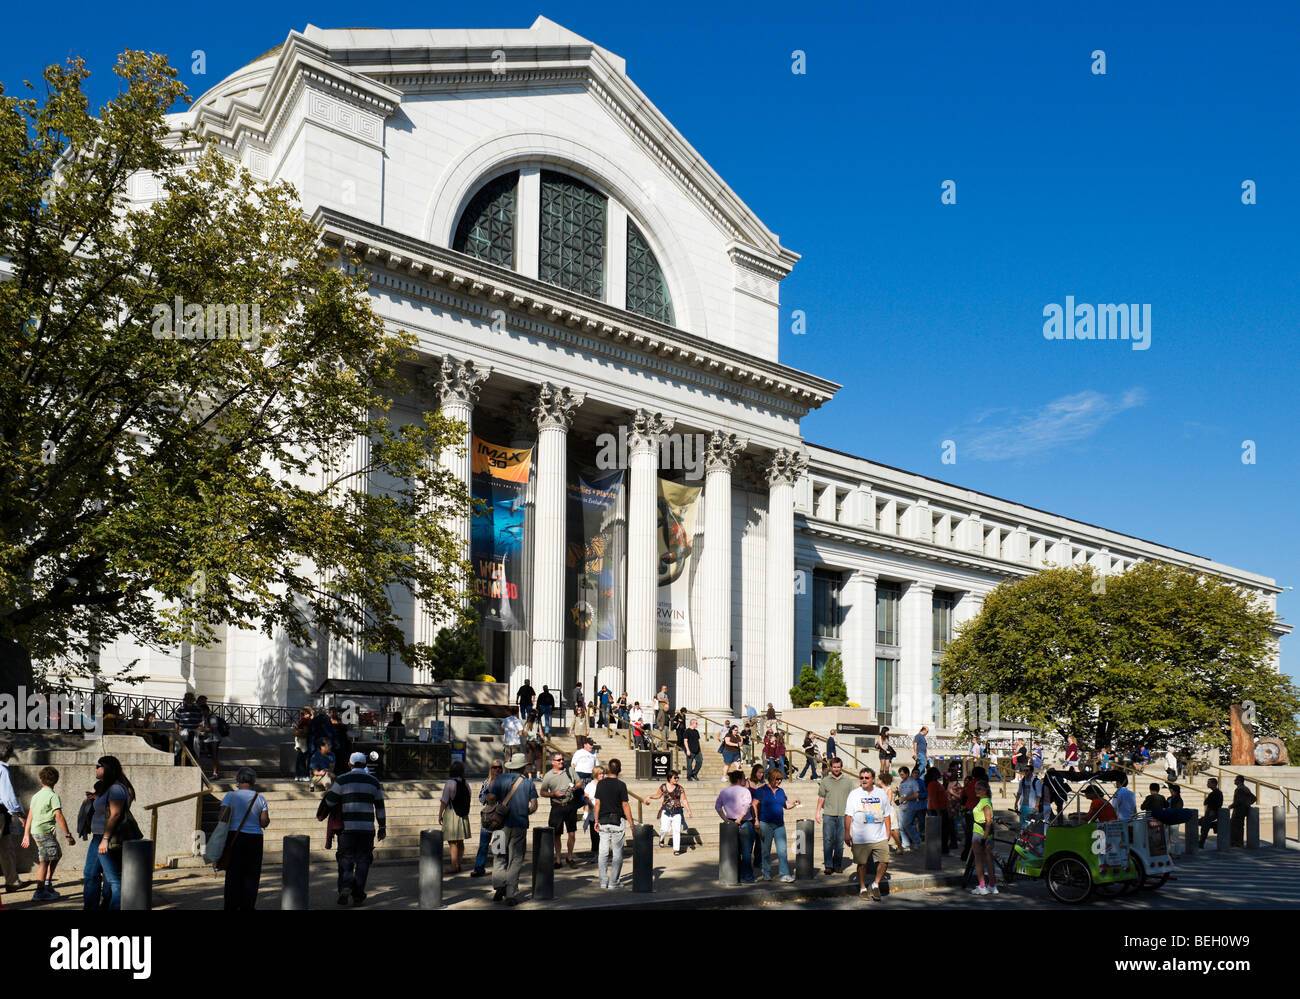 L'Institutution Smithsonian National Museum of Natural History, The Mall, Washington DC, USA Photo Stock